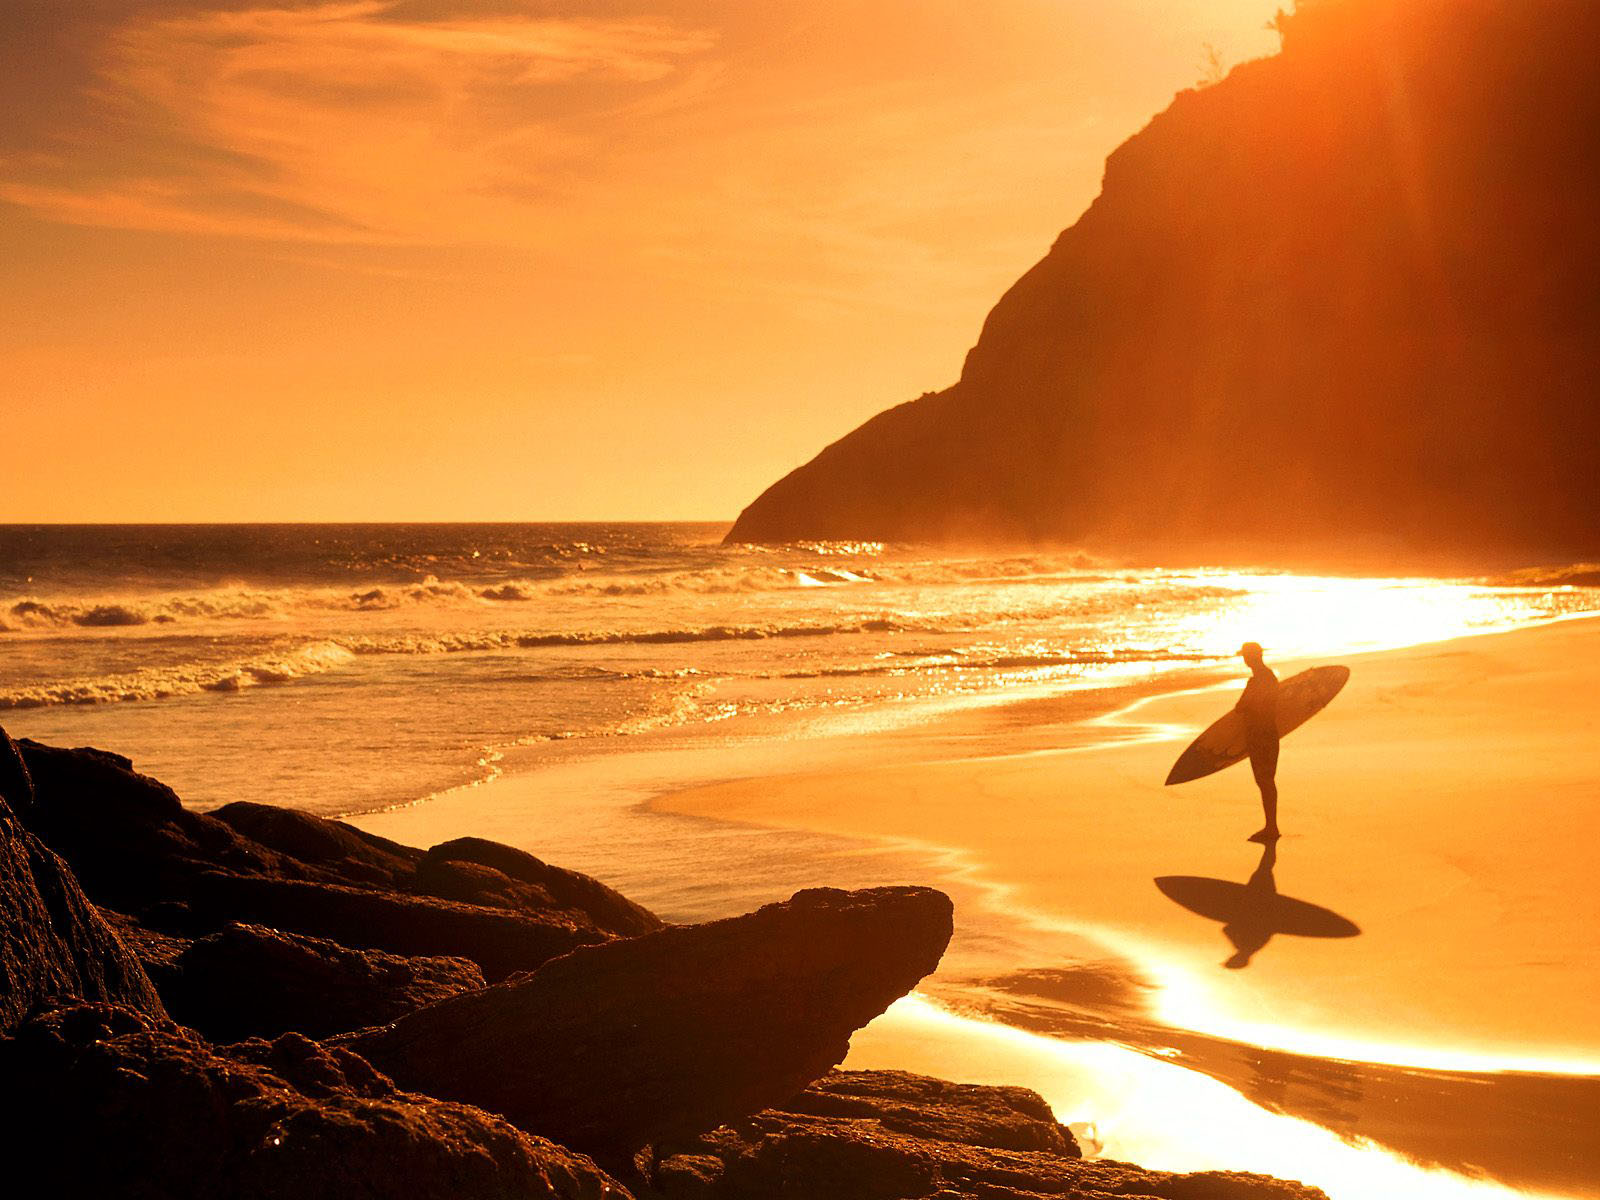 Surfing Full HD Quality Wallpapers